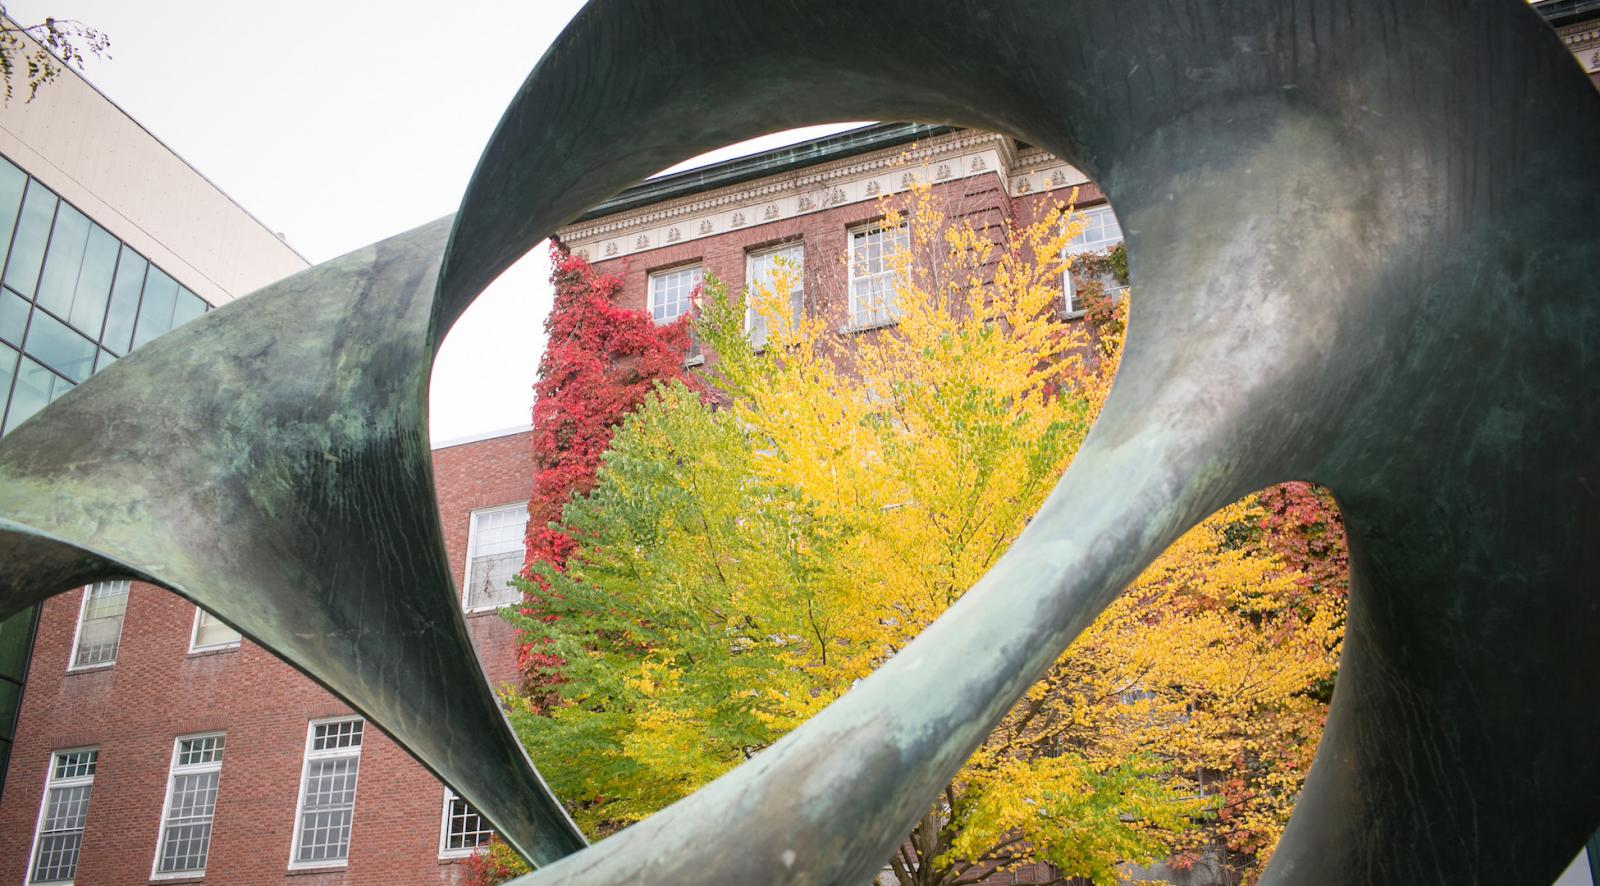 Sculpture near Wilder Hall